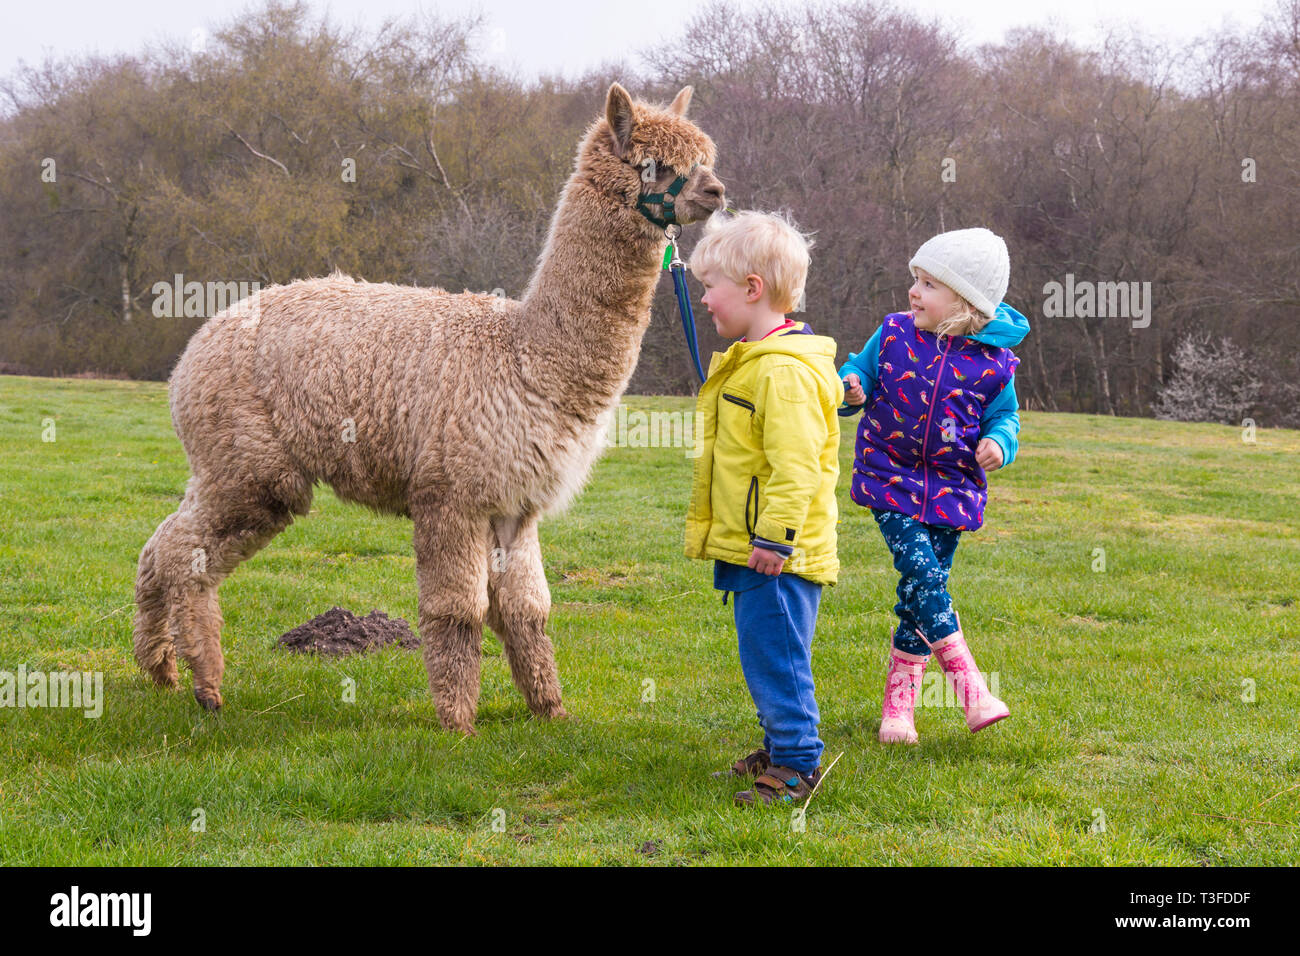 Wareham, Dorset, UK. 9th Apr 2019. Alpaca walks at Longthorns Farm in Wareham. Elliot and Ethan with William, Harry has run away  (permission received). Credit: Carolyn Jenkins/Alamy Live News - Stock Image